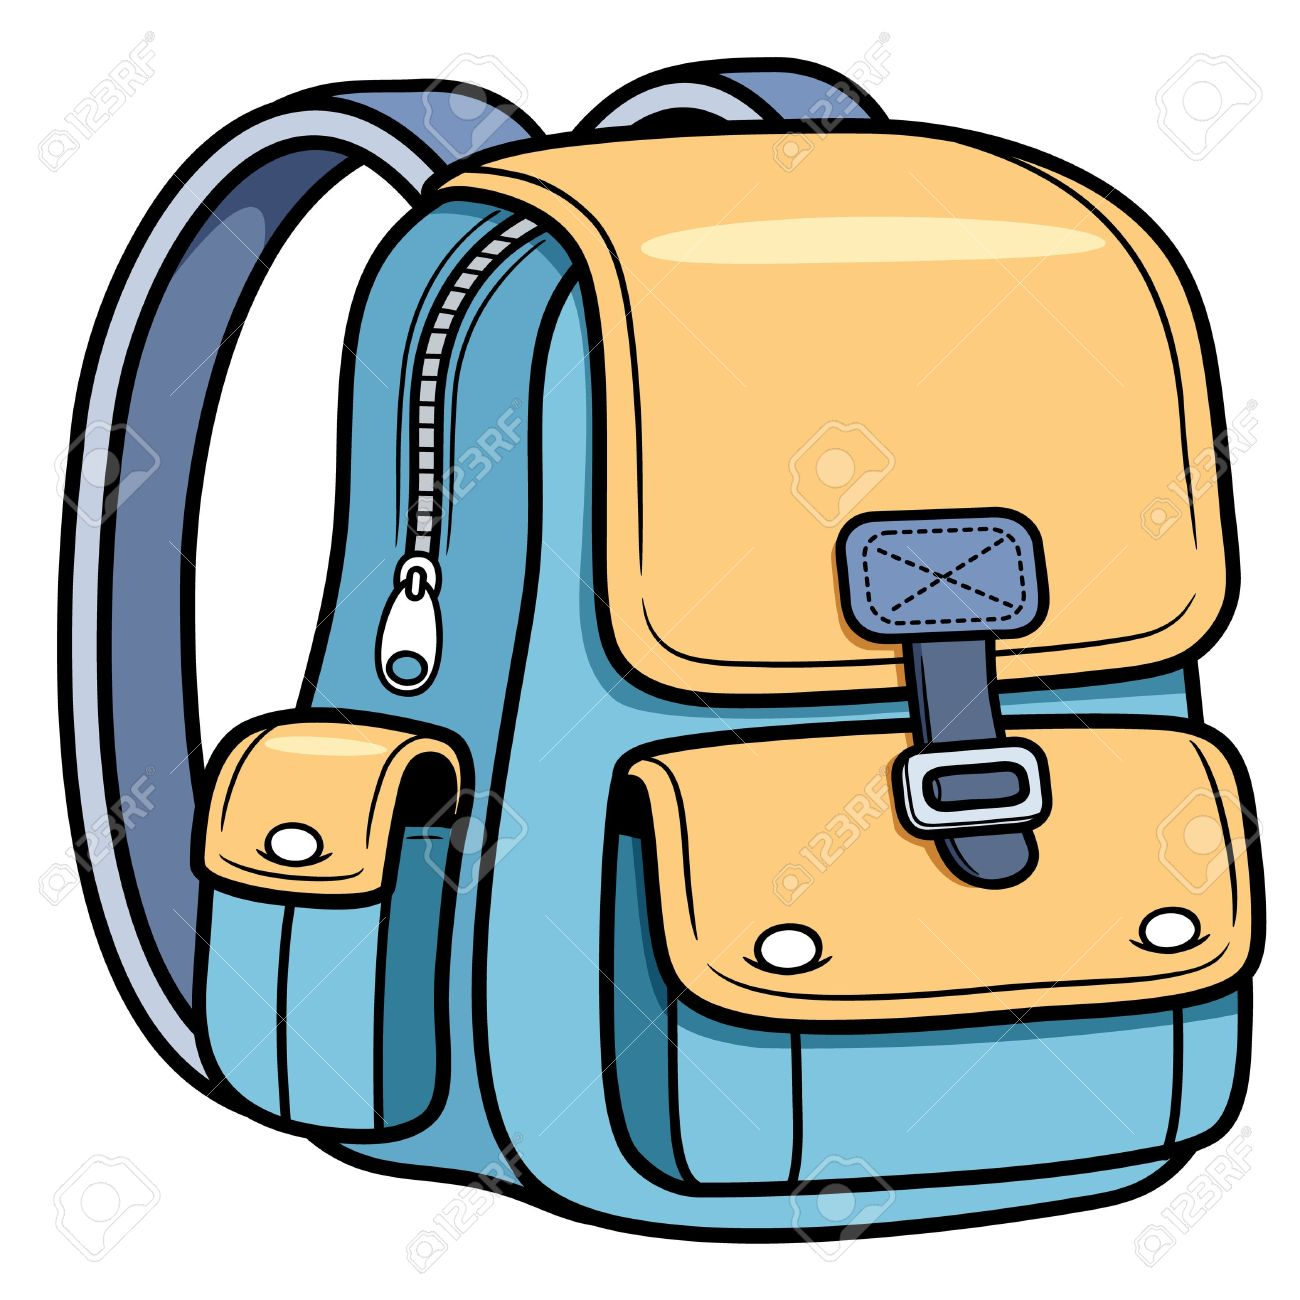 school bags drawing at getdrawings com free for personal use school bags drawing of your choice end of school clipart black and white end of school day clipart